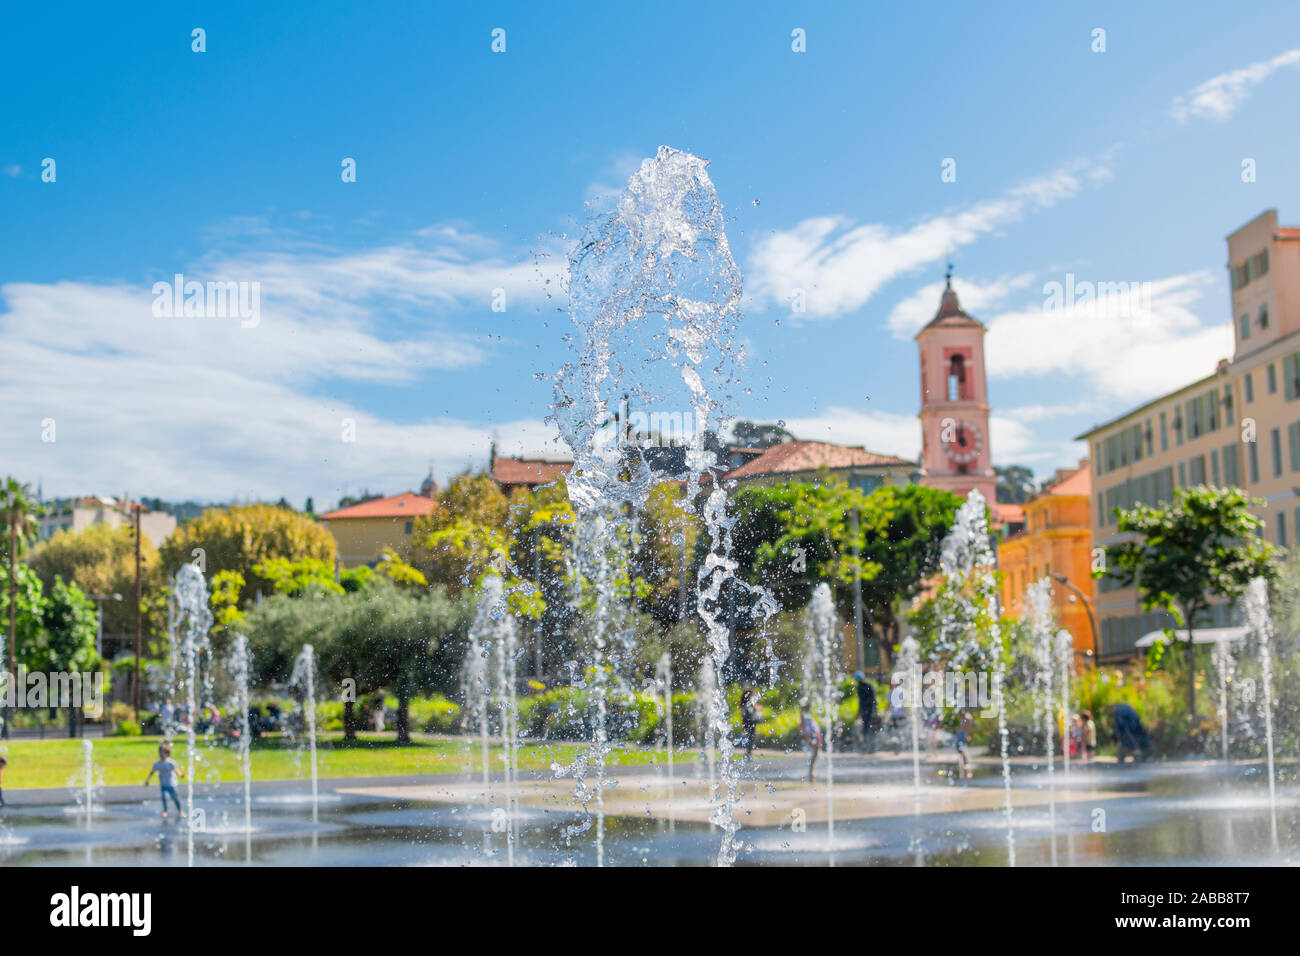 A stream of water and spray from the water feature at the Paillon Promenade park in Nice, France, on the French Riviera. Stock Photo